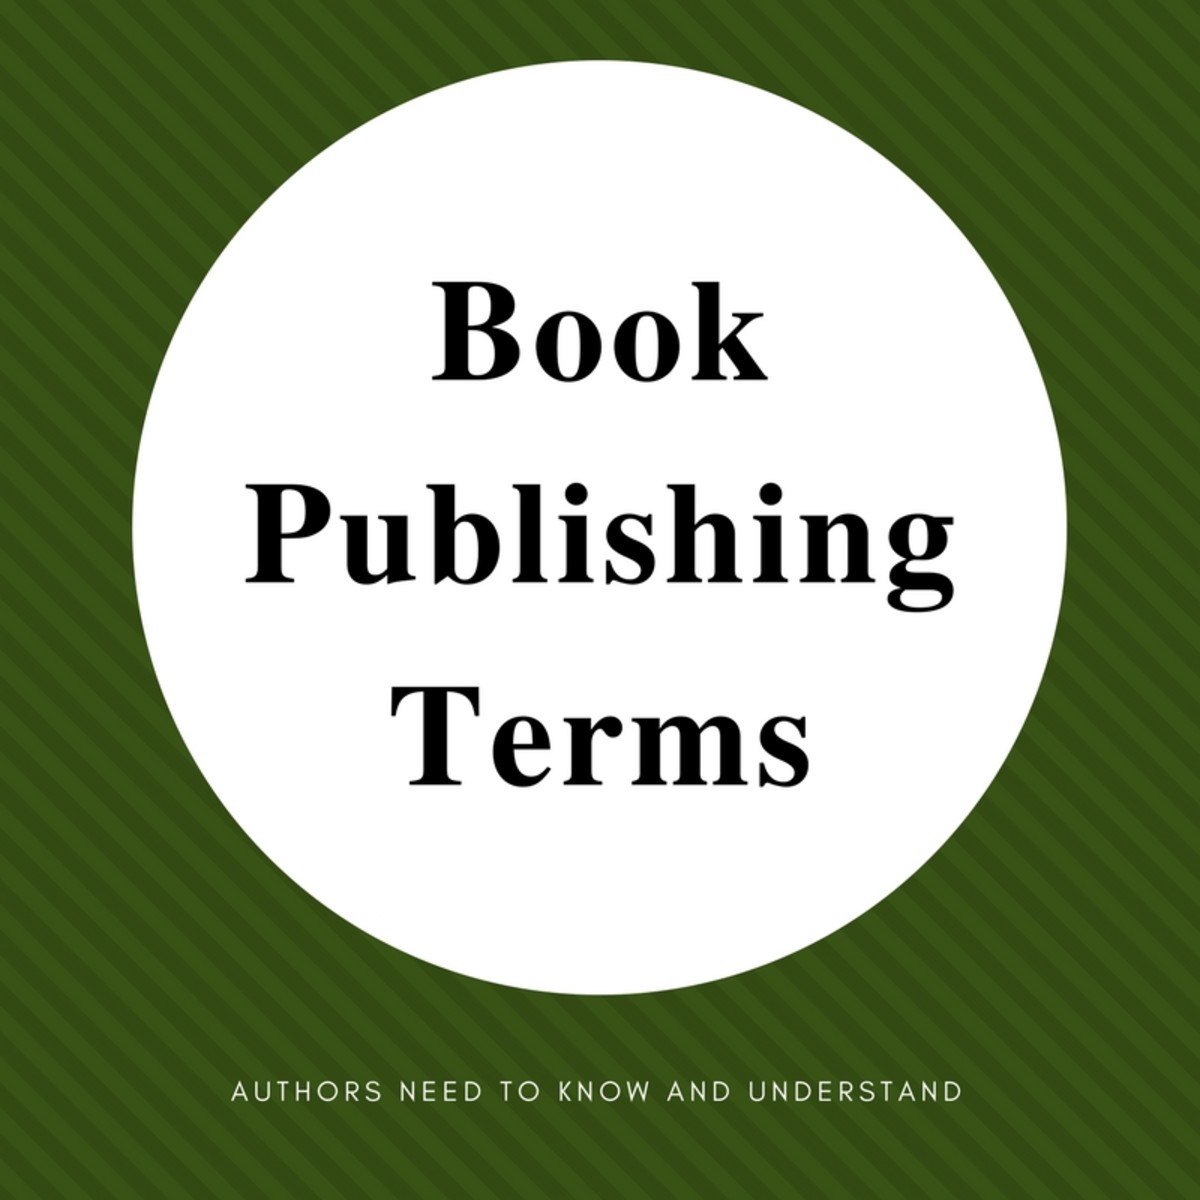 Book Publishing Terms Authors Need to Know and Understand